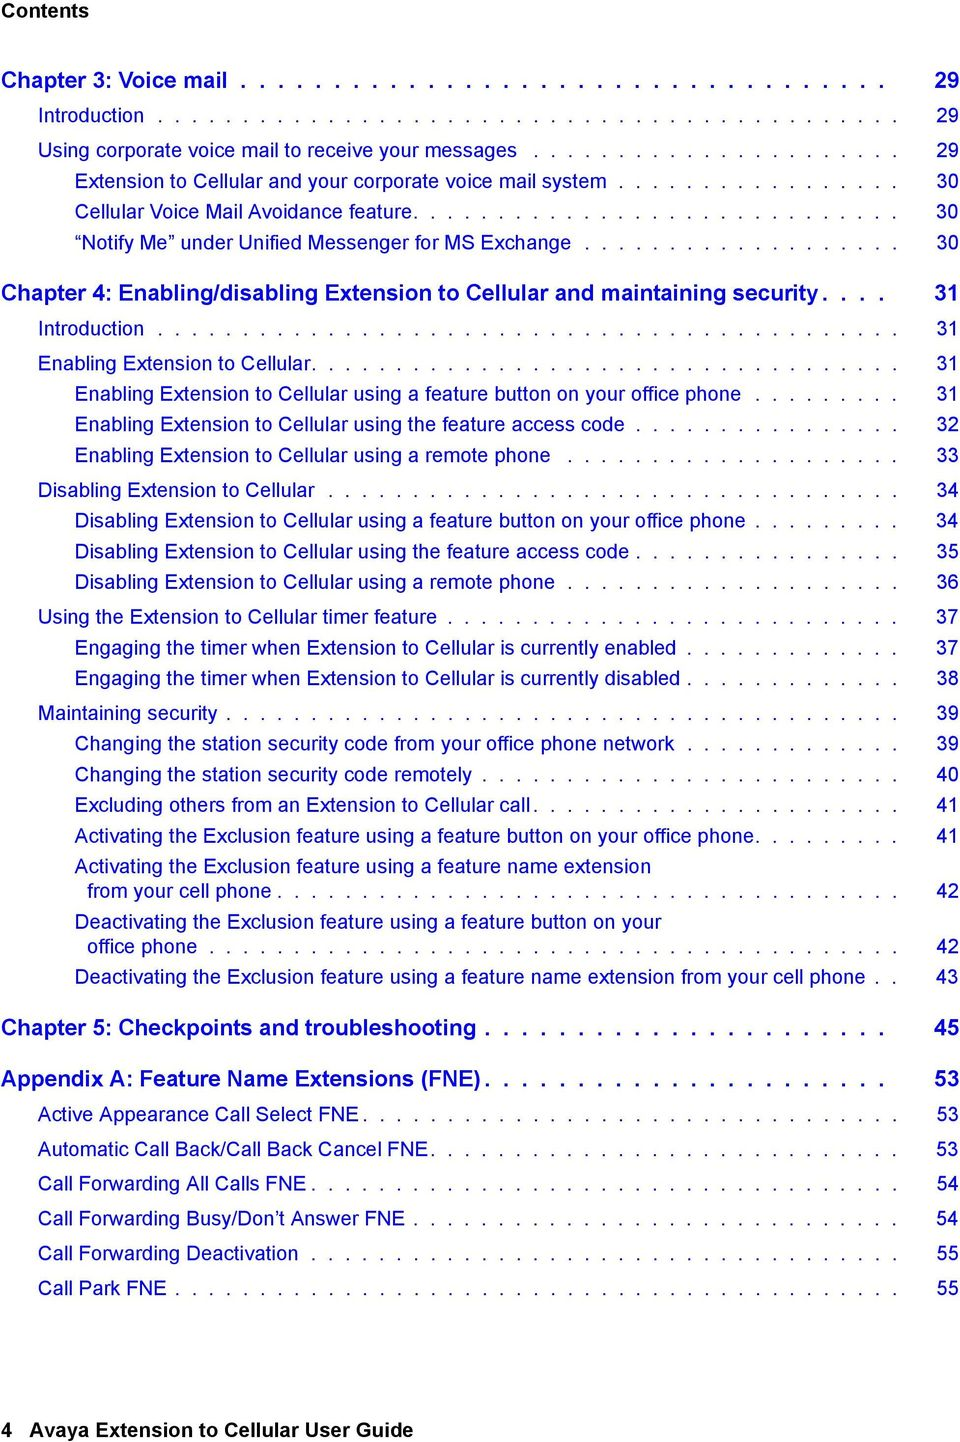 .................. 30 Chapter 4: Enabling/disabling Extension to Cellular and maintaining security.... 31 Introduction............................................ 31 Enabling Extension to Cellular.